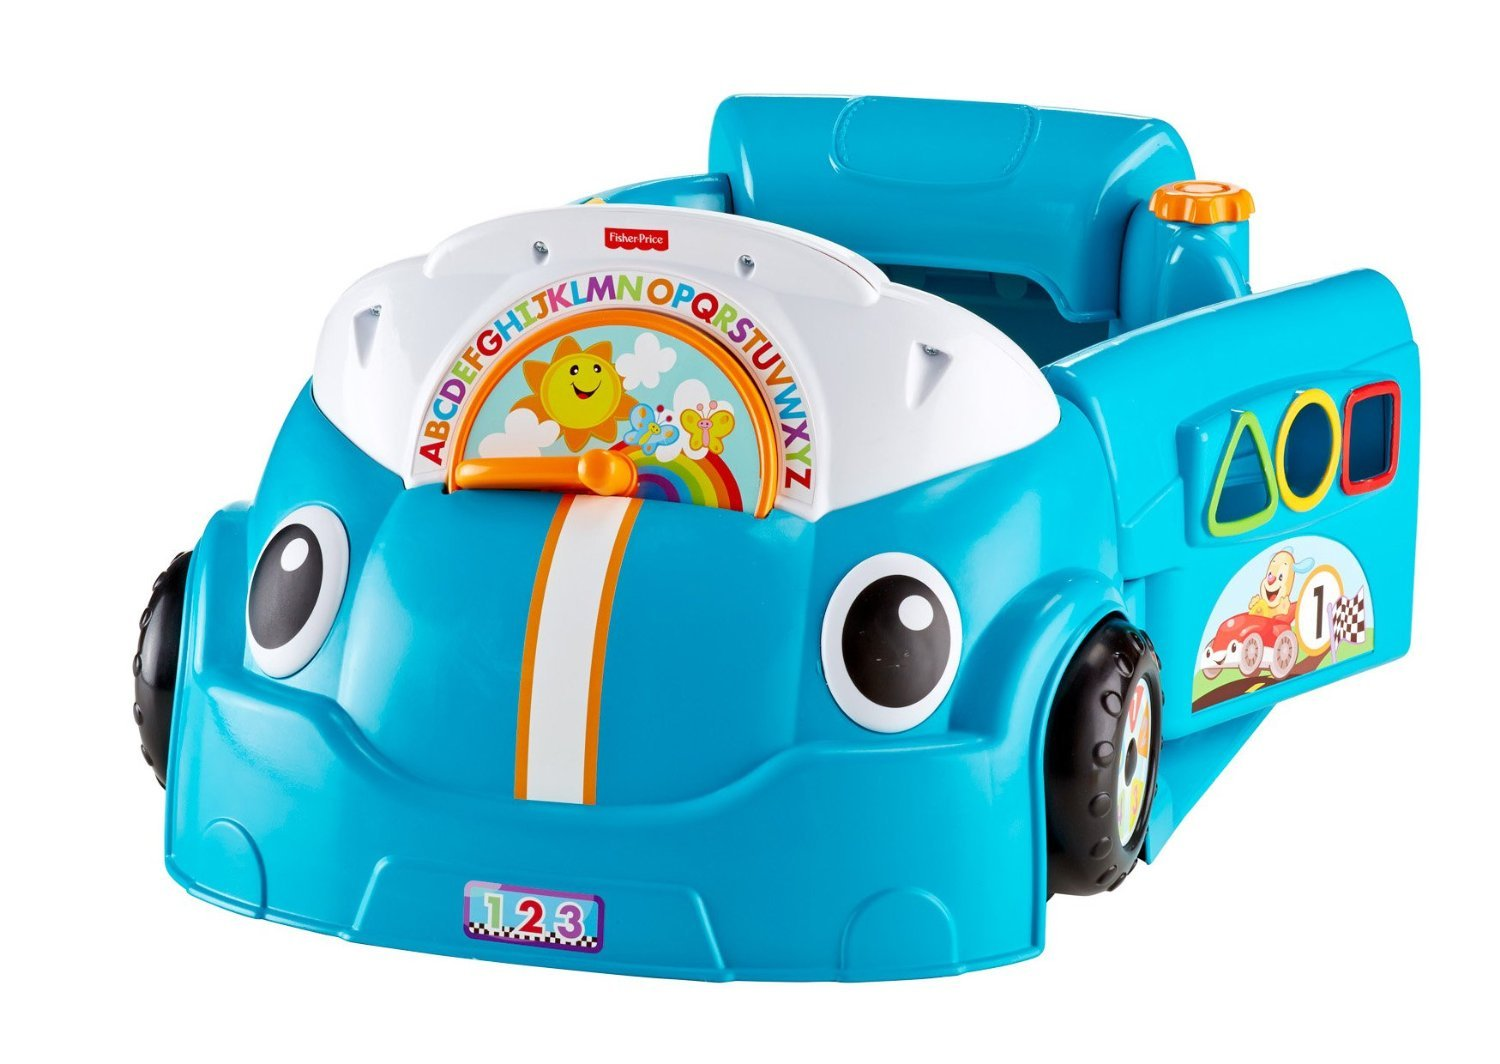 Fisher-Price Laugh & Learn Smart Stages Crawl Around Car, Blue by Fisher-Price (Image #14)